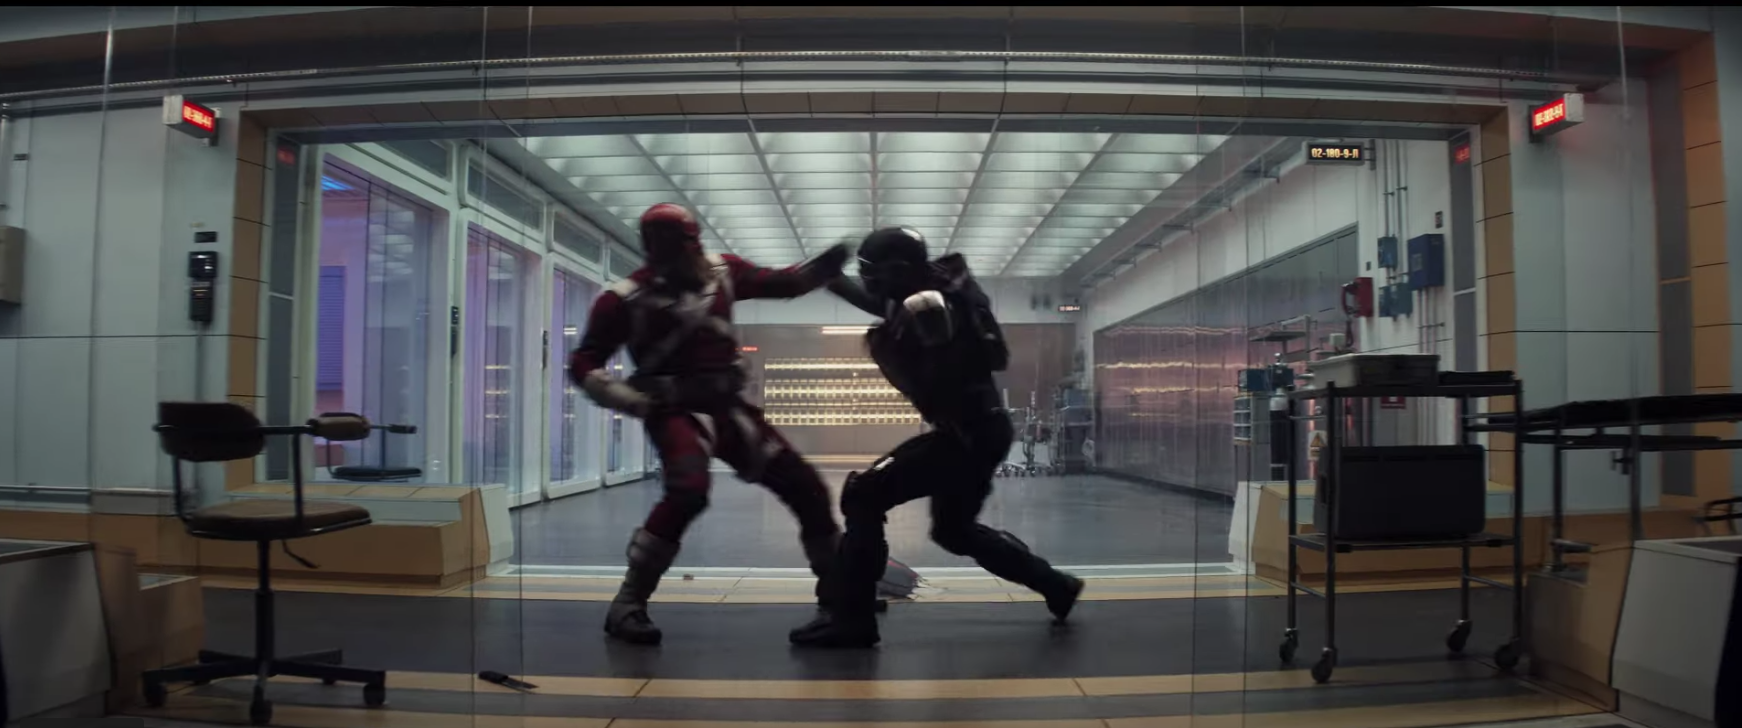 Two costumed agents fight in an office setting.